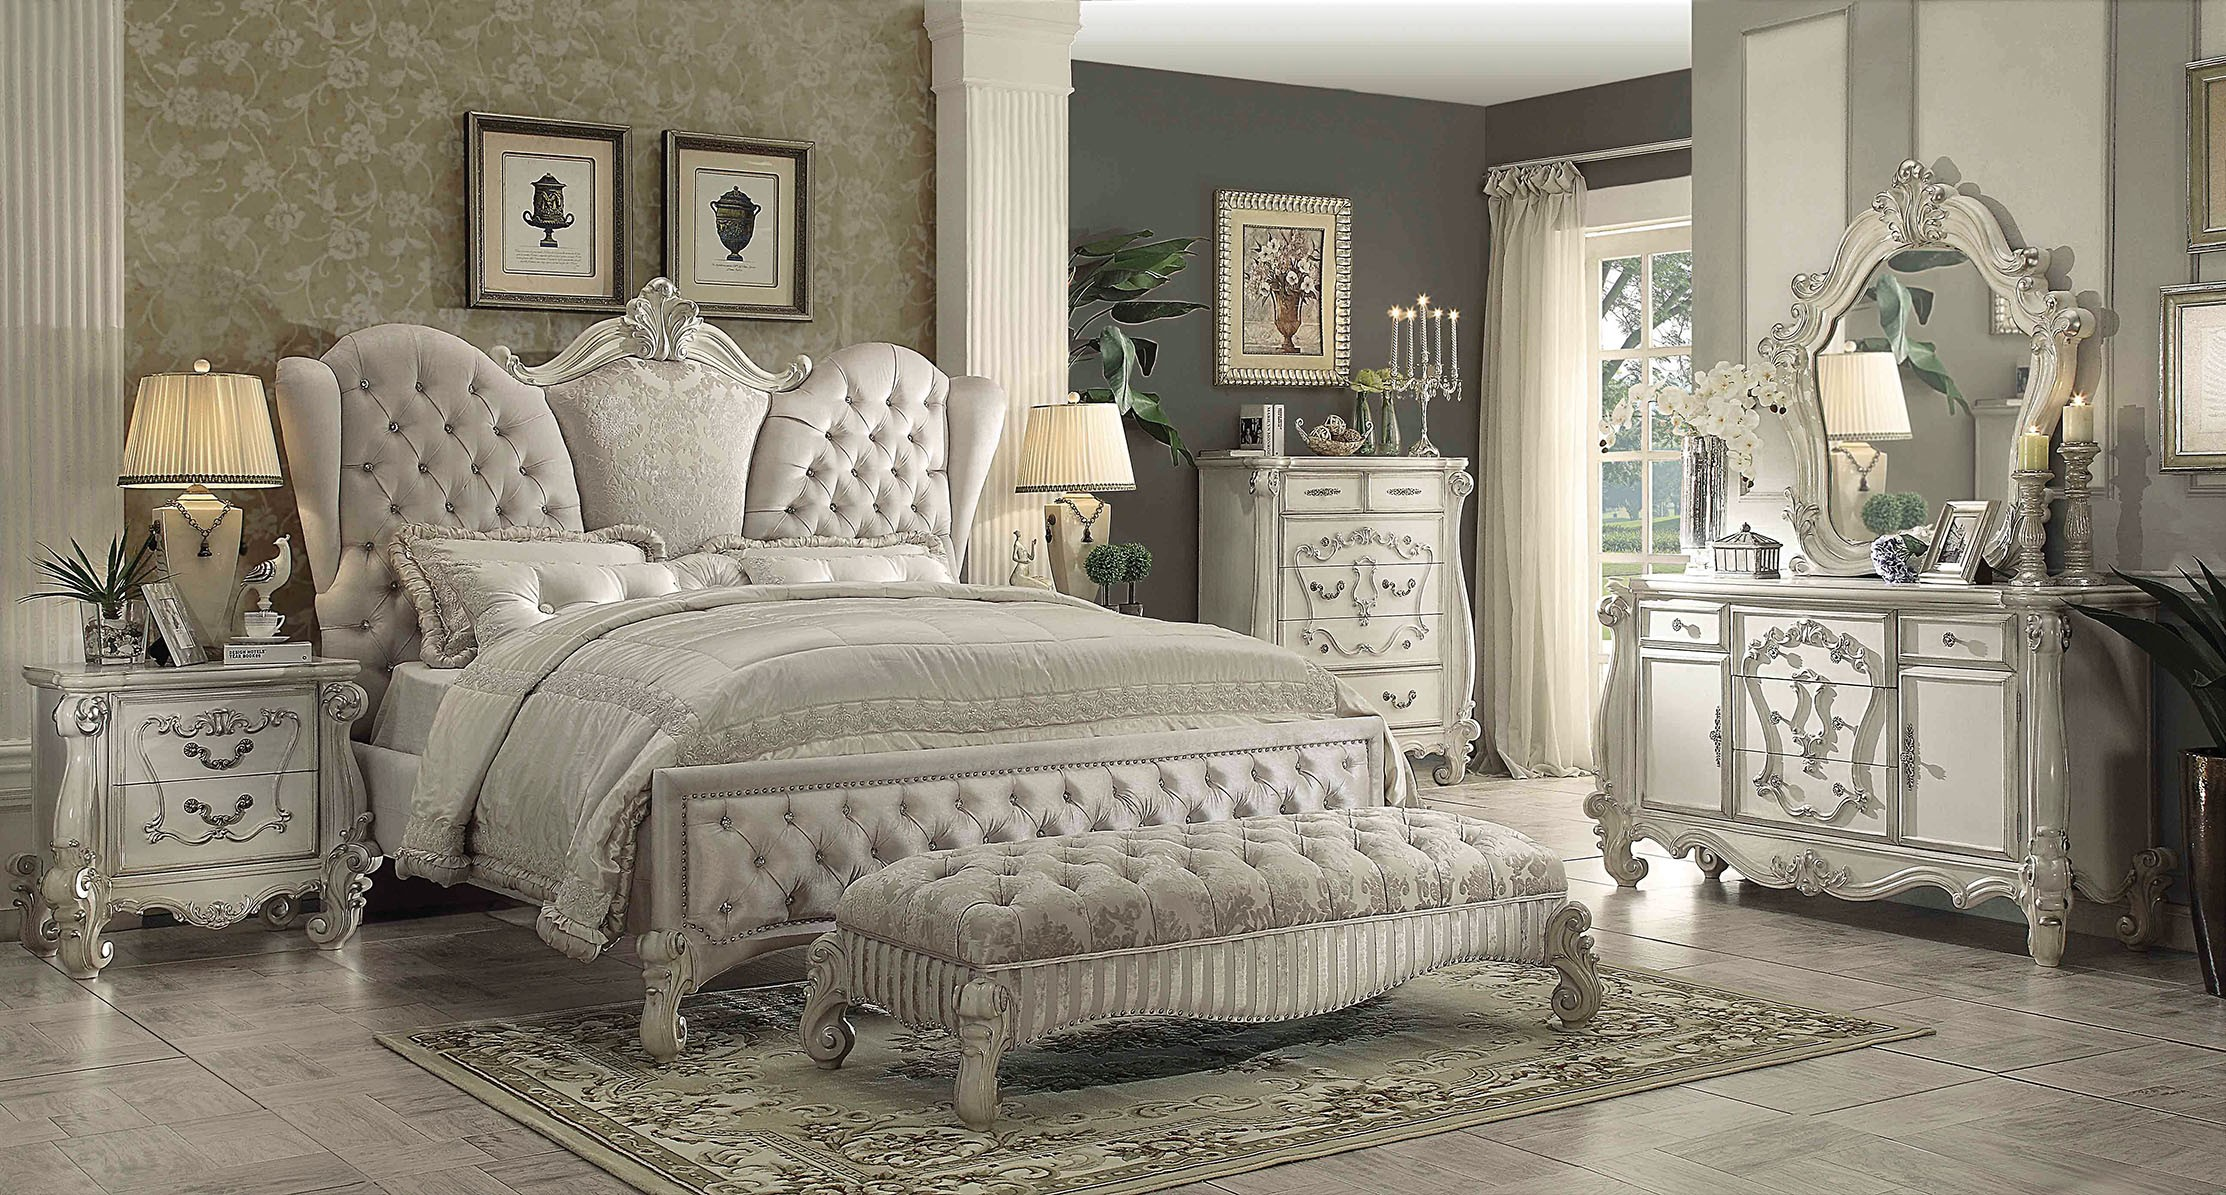 jsp set view diva sets piece furniture bedroom cal king willey bed champagne california rcwilley rc